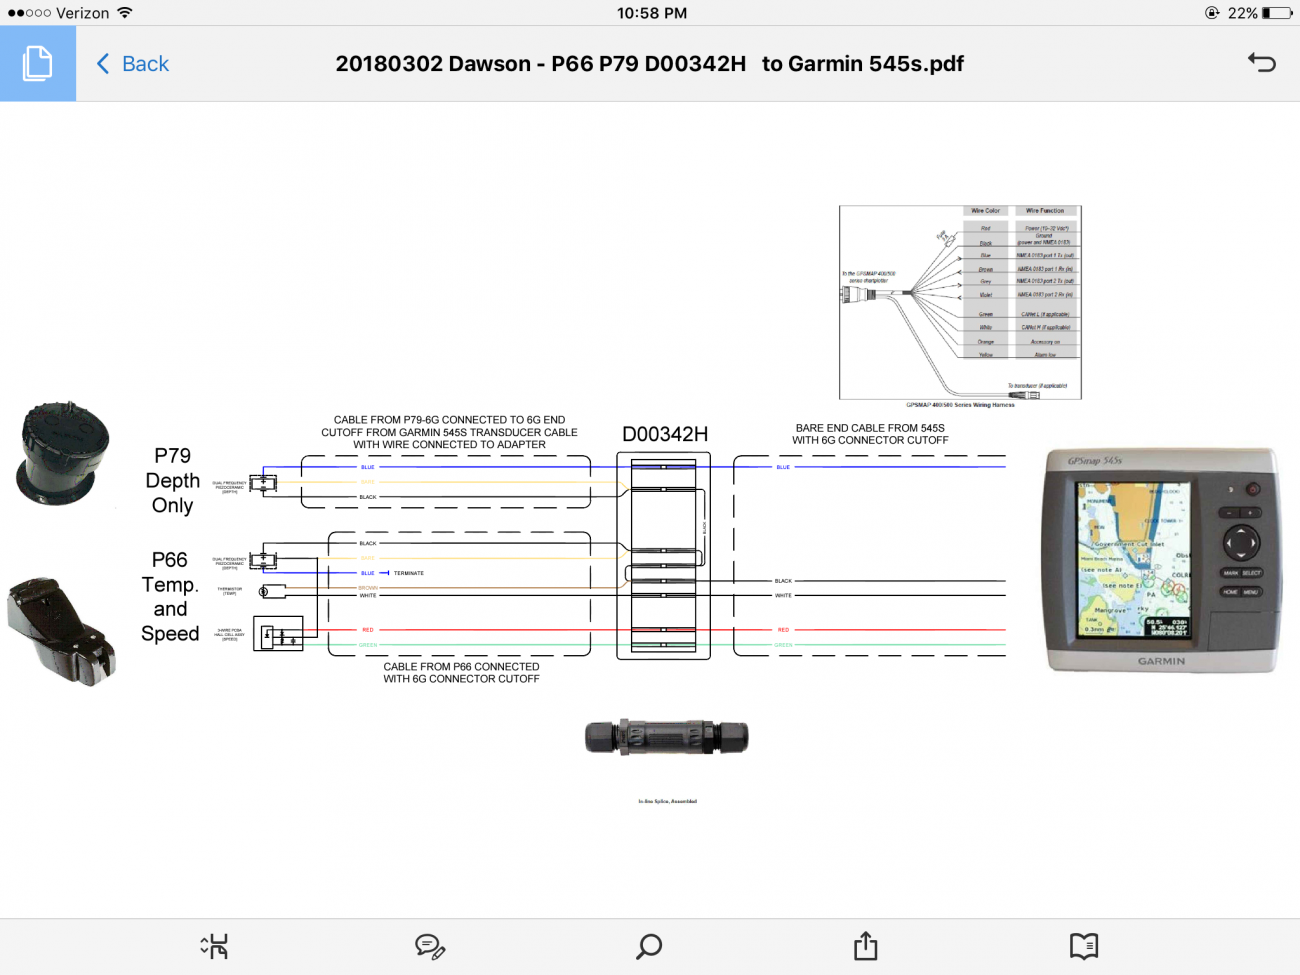 Garmin Wiring Diagram For P79 Depth Finder Transducer Discussion Page 2 Shamrock Boat Owners Club